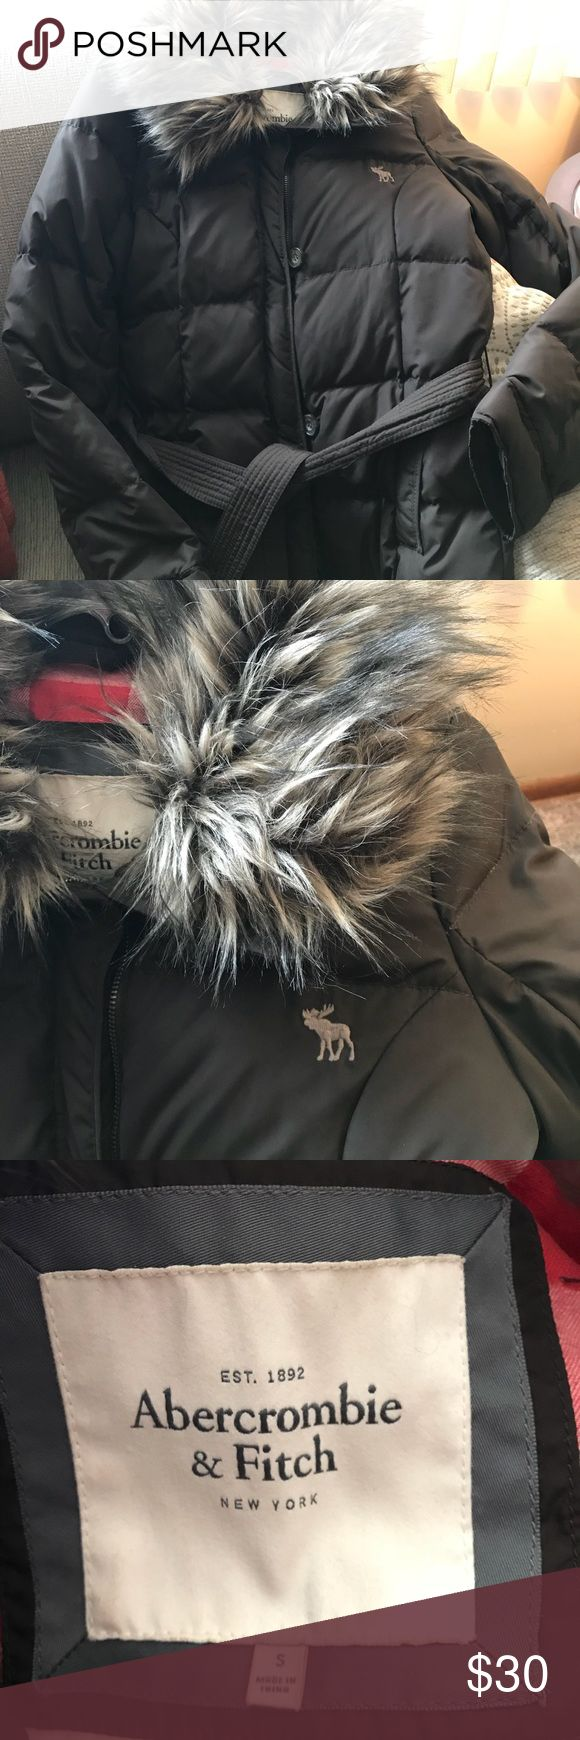 Chocolate brown Abercrombie and Fitch winter coat Brown faux fur color, tie waist winter coat. Abercrombie & Fitch Jackets & Coats Puffers